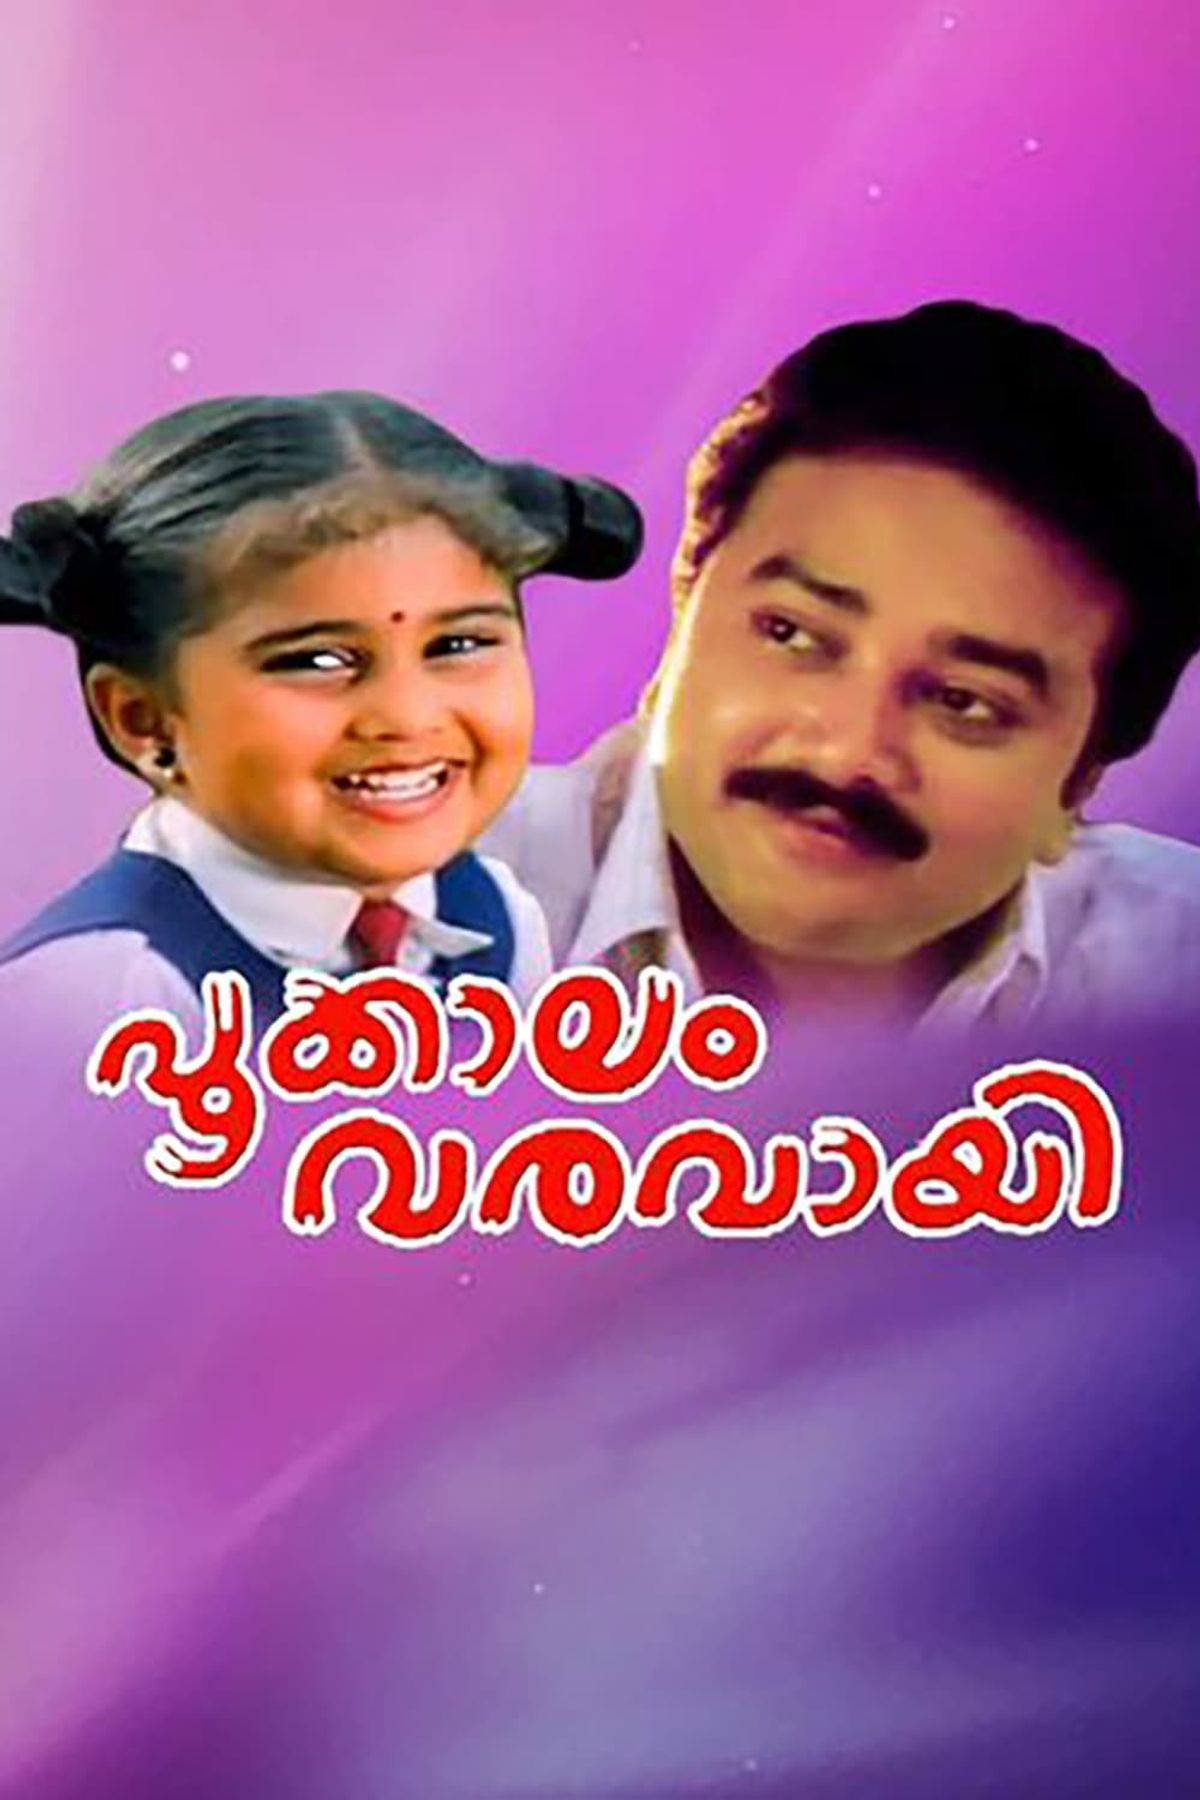 Paravoor Bharathan Best Movies, TV Shows and Web Series List